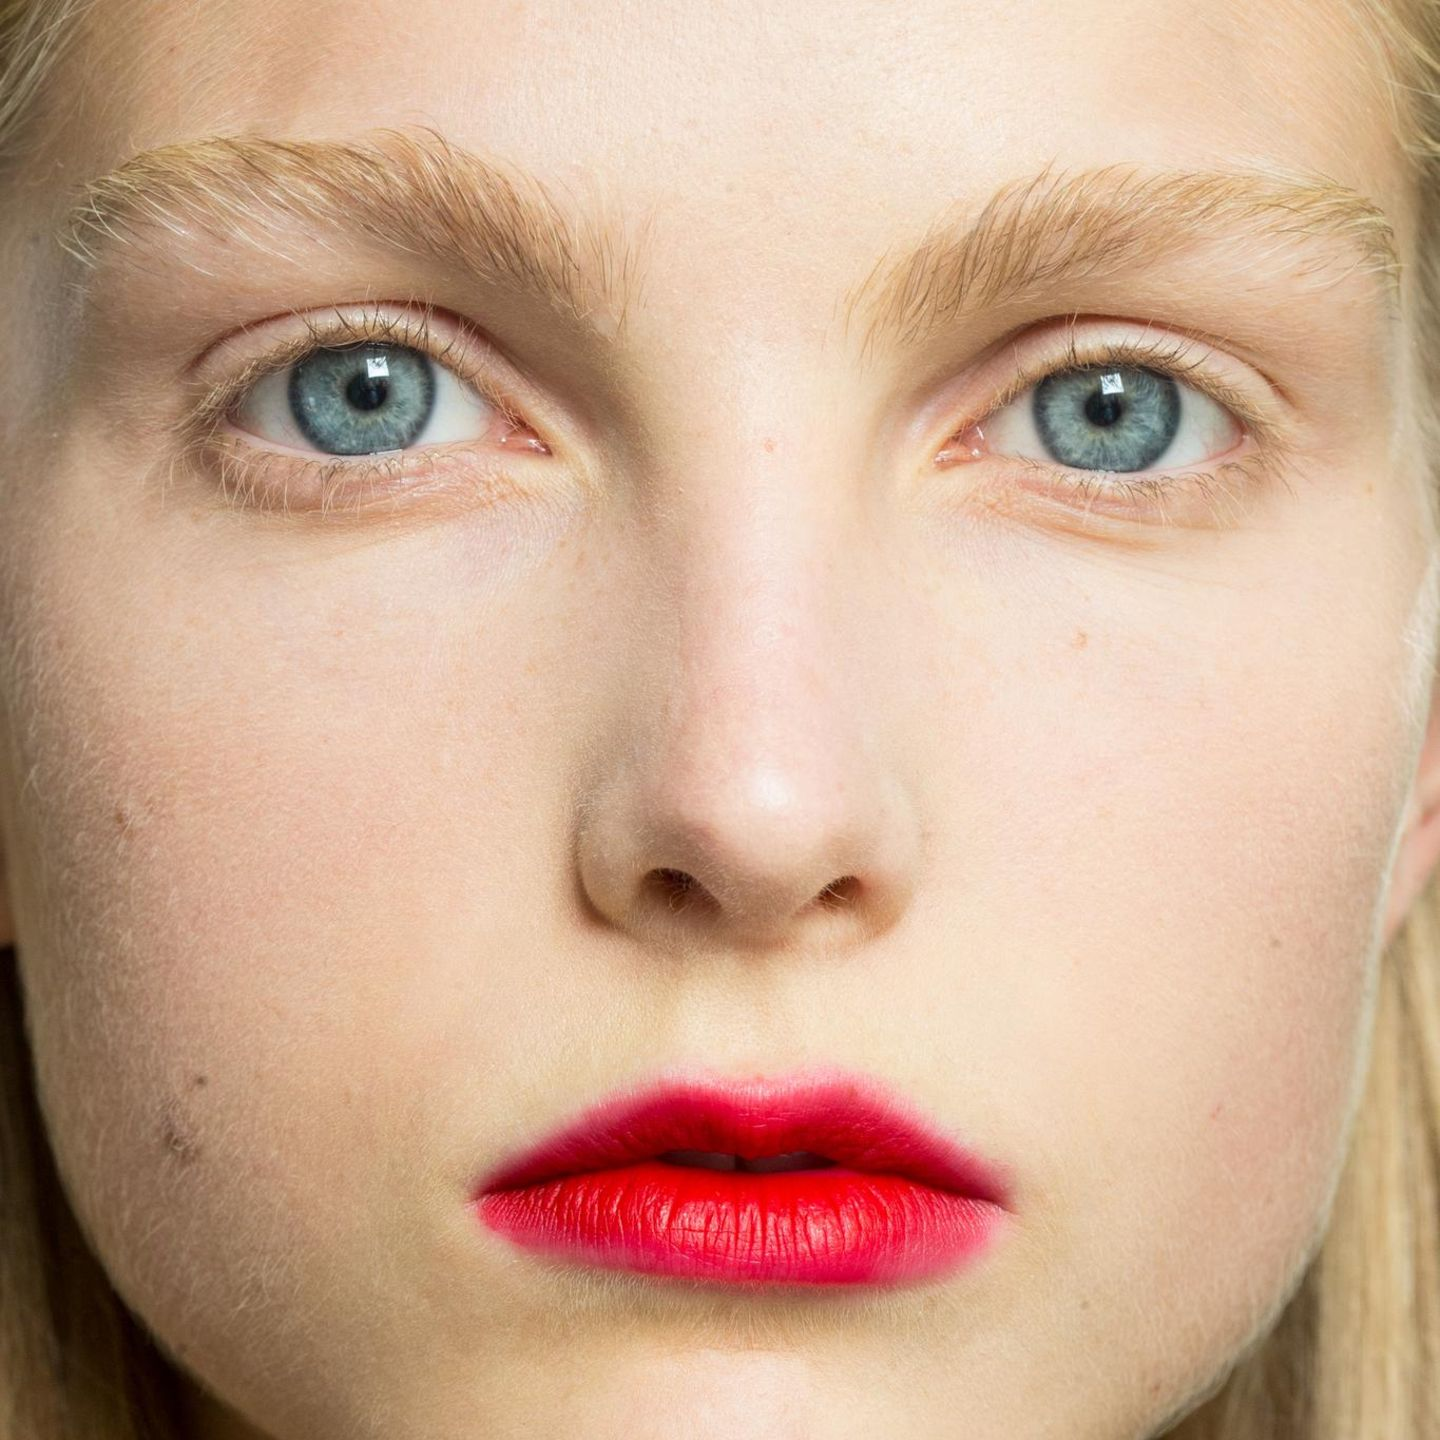 Make-up Trends 2018: Smudged Lips